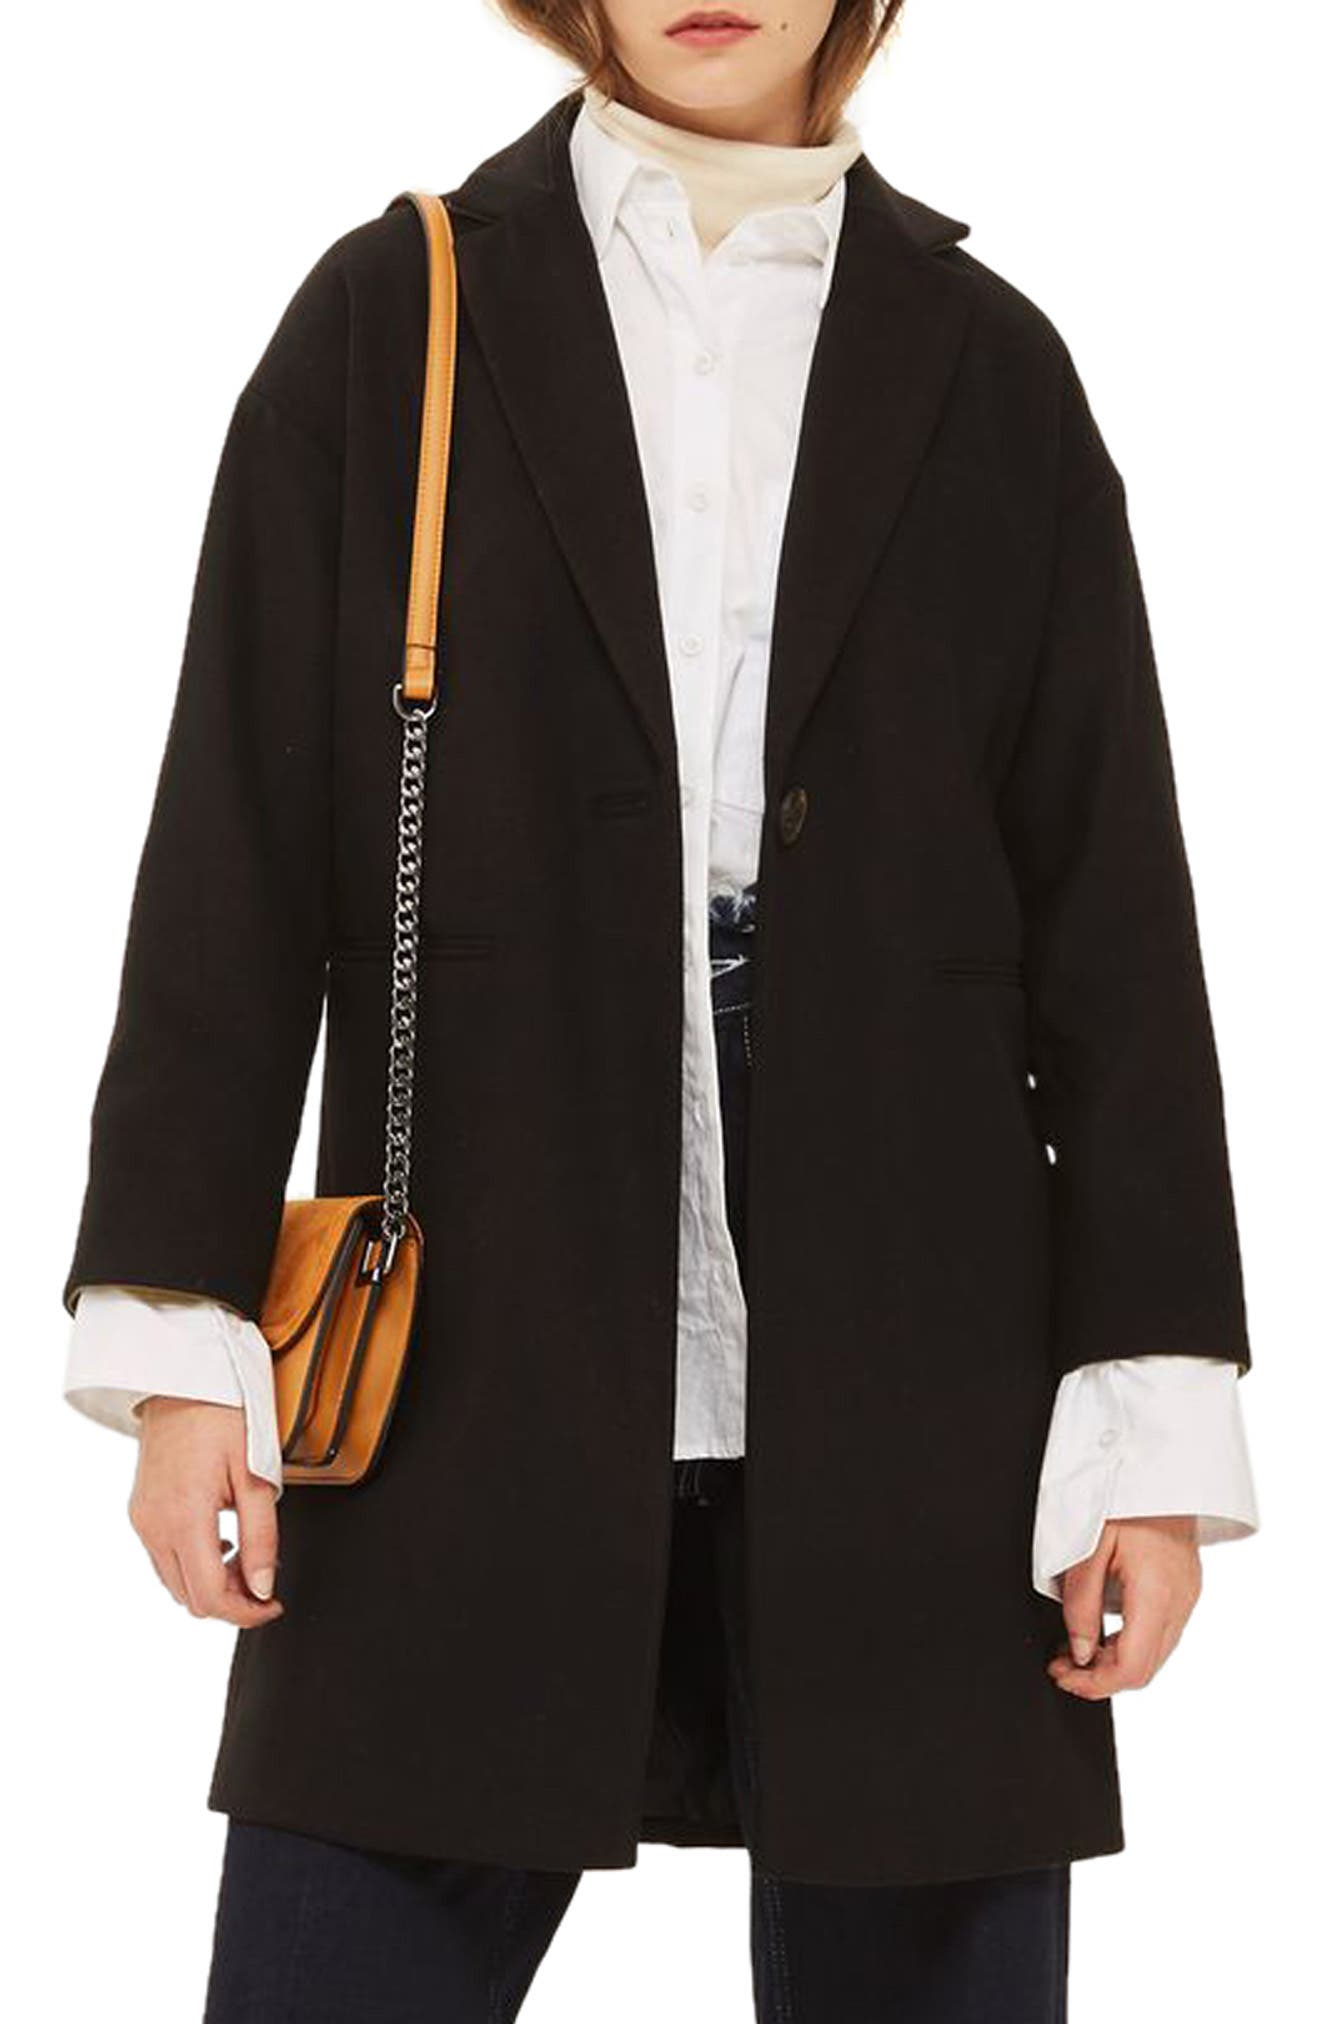 Topshop Millie Relaxed Fit Coat